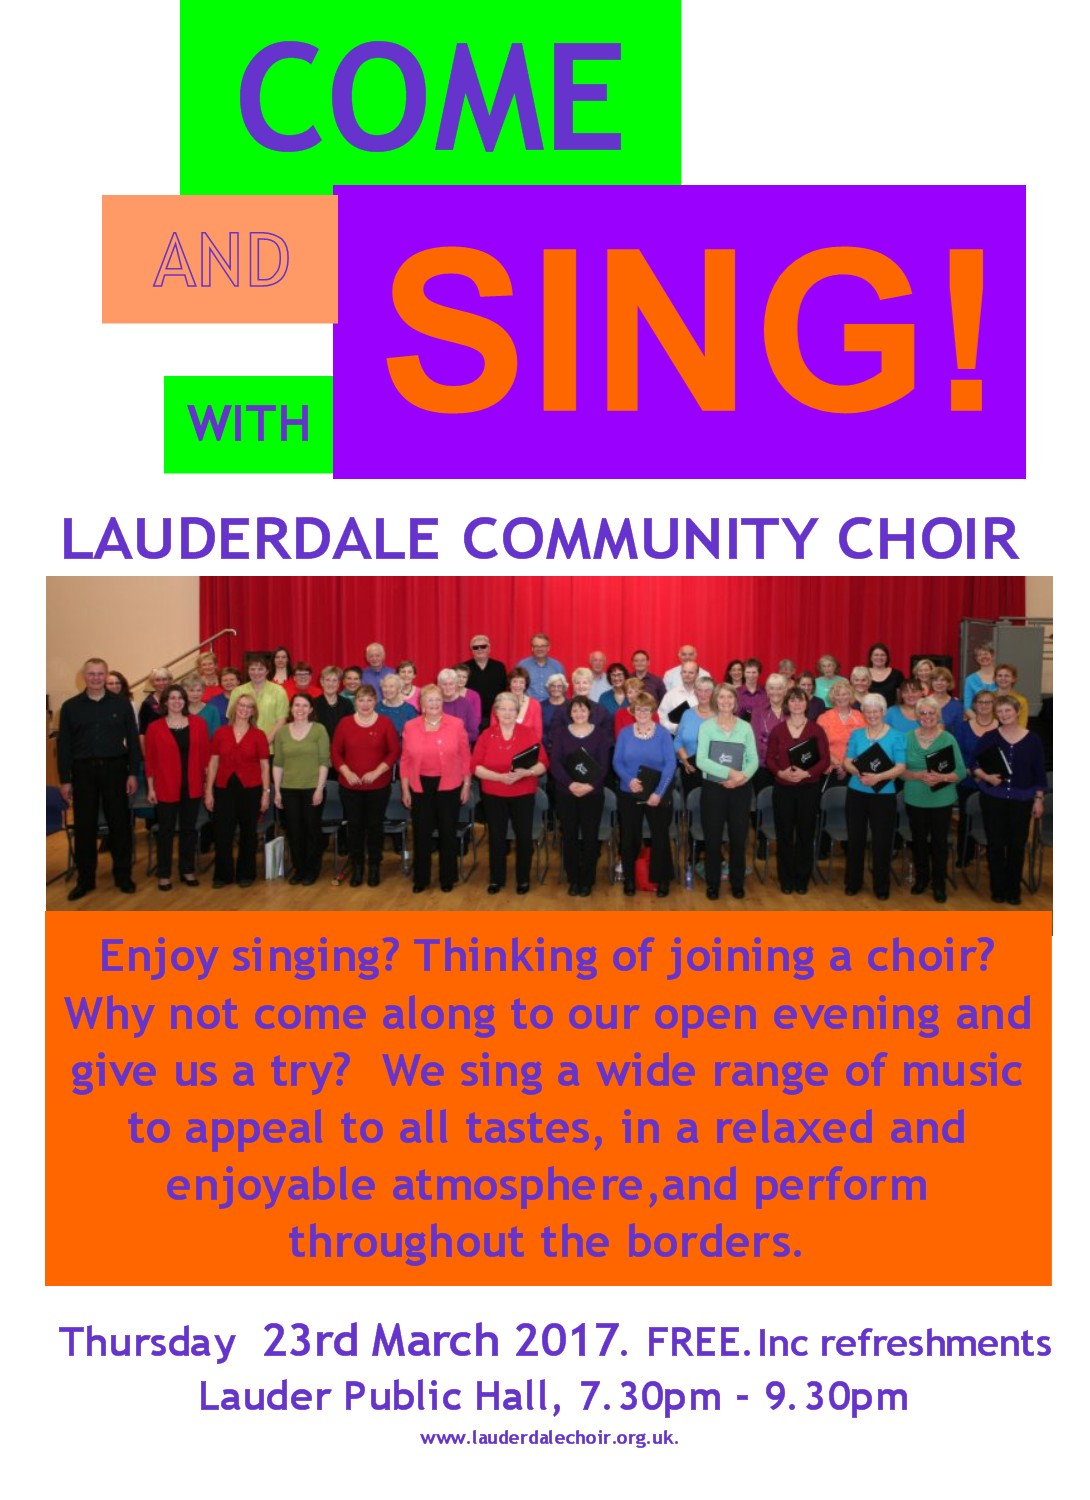 Come and Sing!